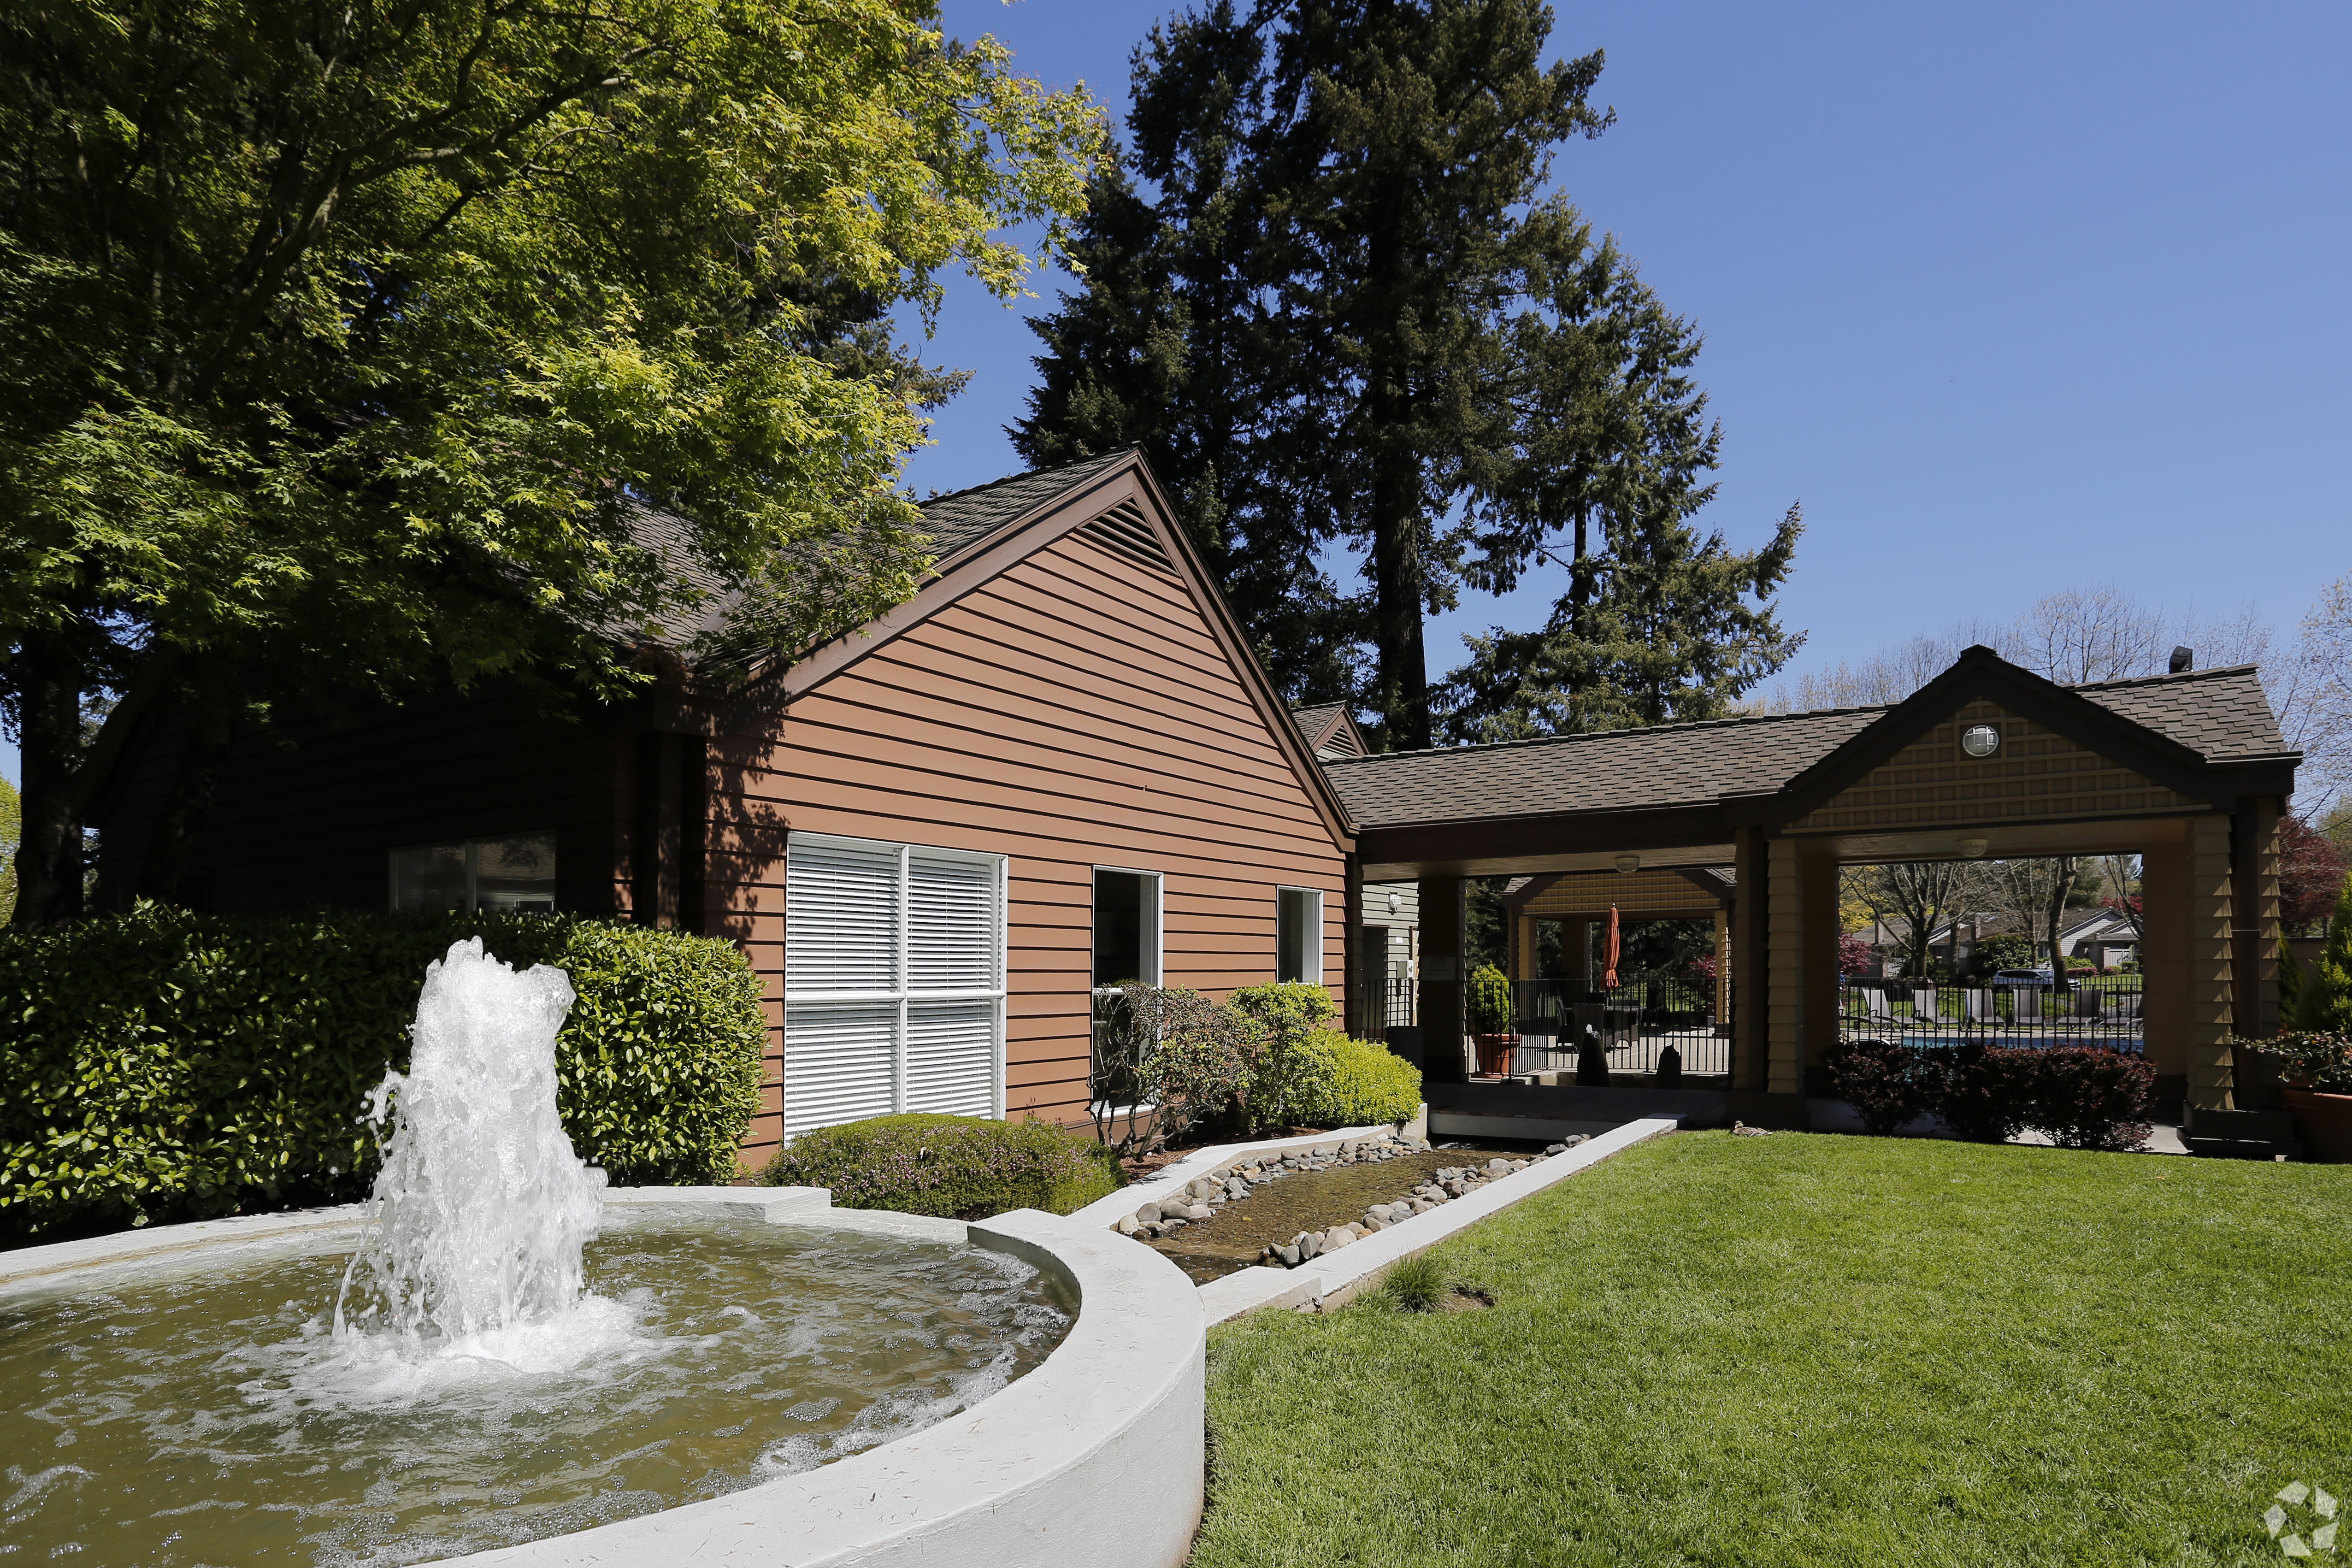 MG Properties Buys 2 Oregon Property Apartment Complexes